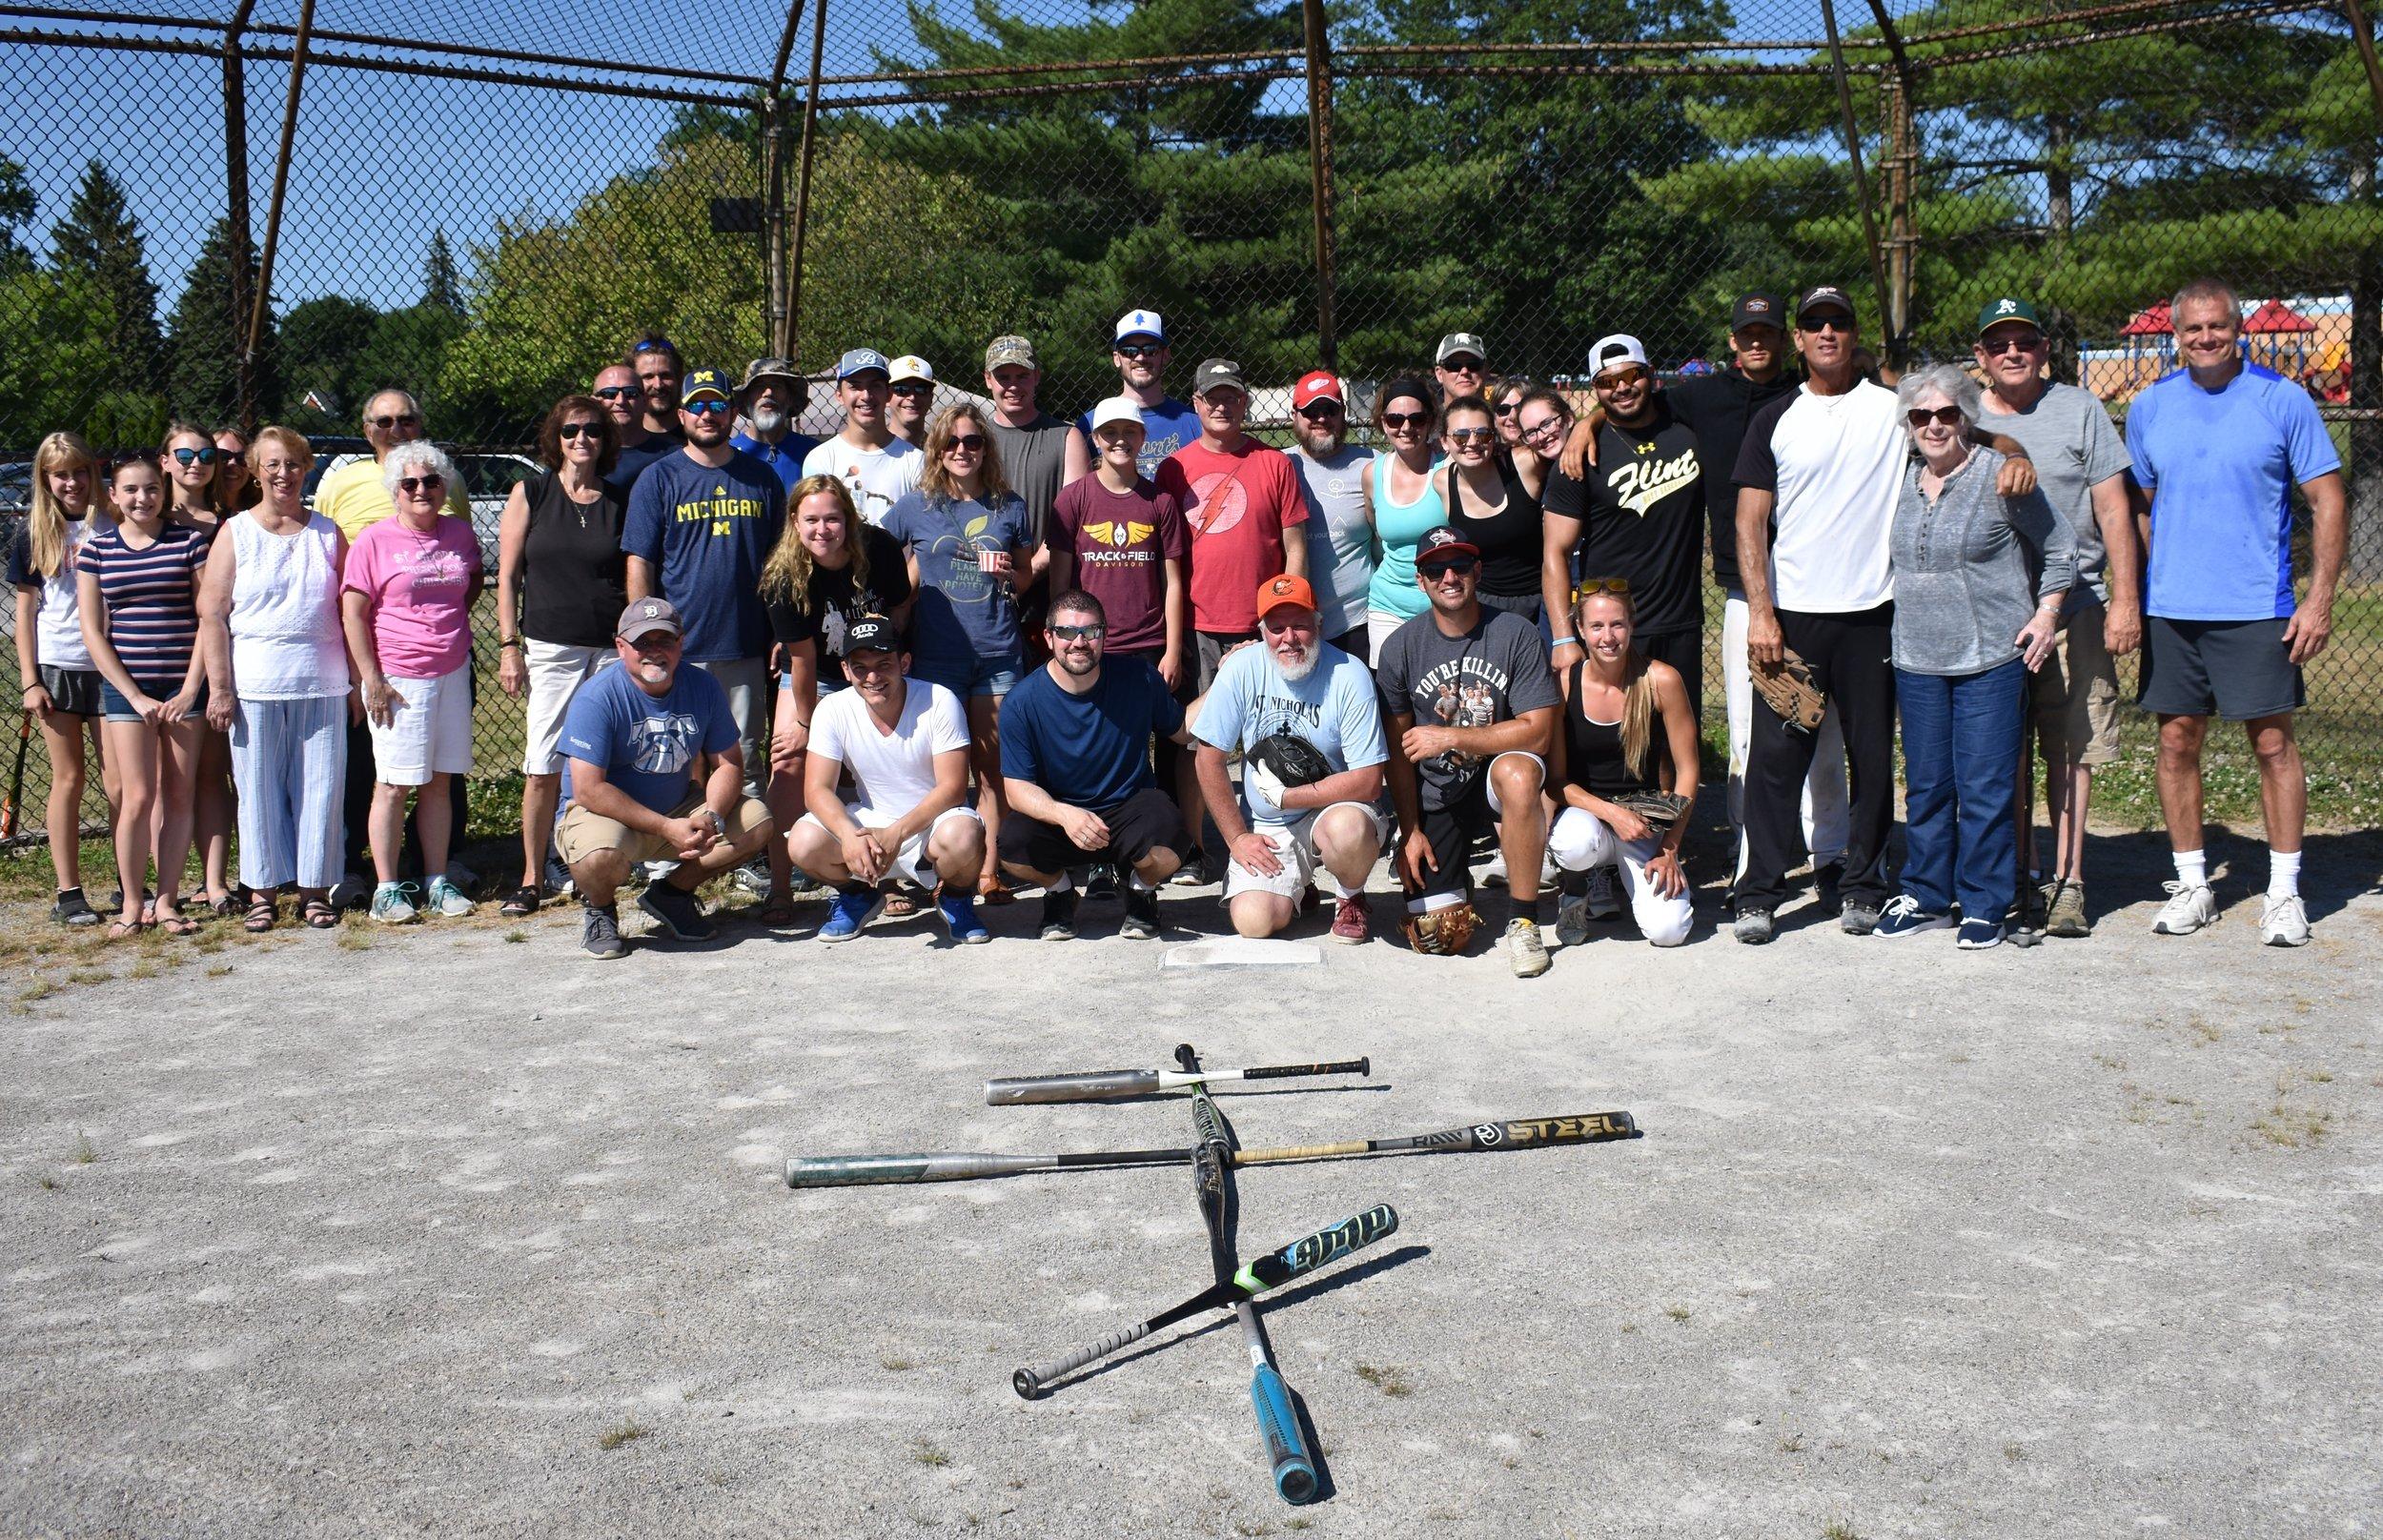 Participants of pan orthodox softball game behind home plate with bats in shape of cross in foreground